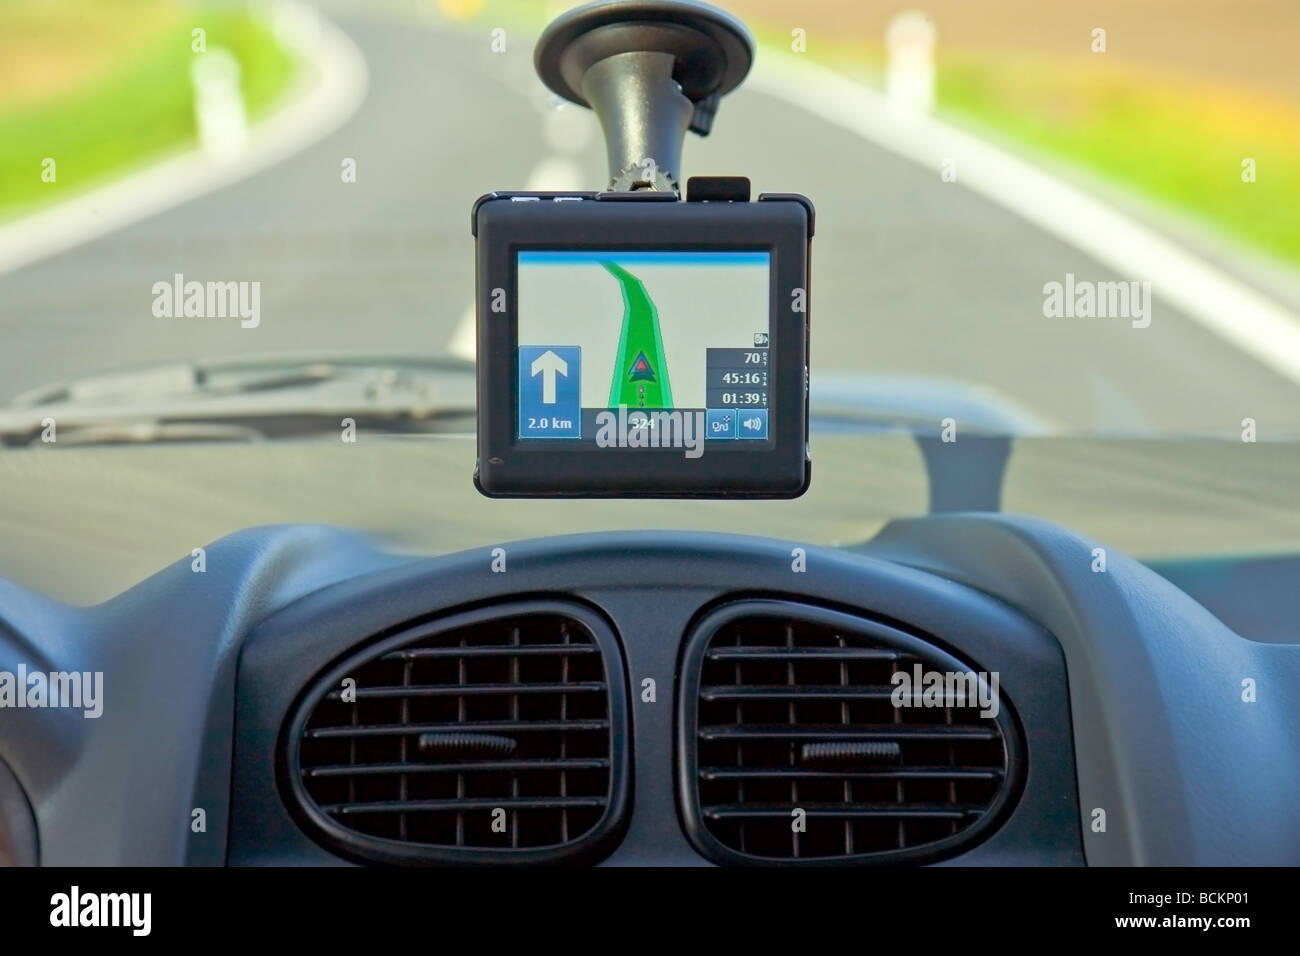 gps navigation in a car - Stock Image